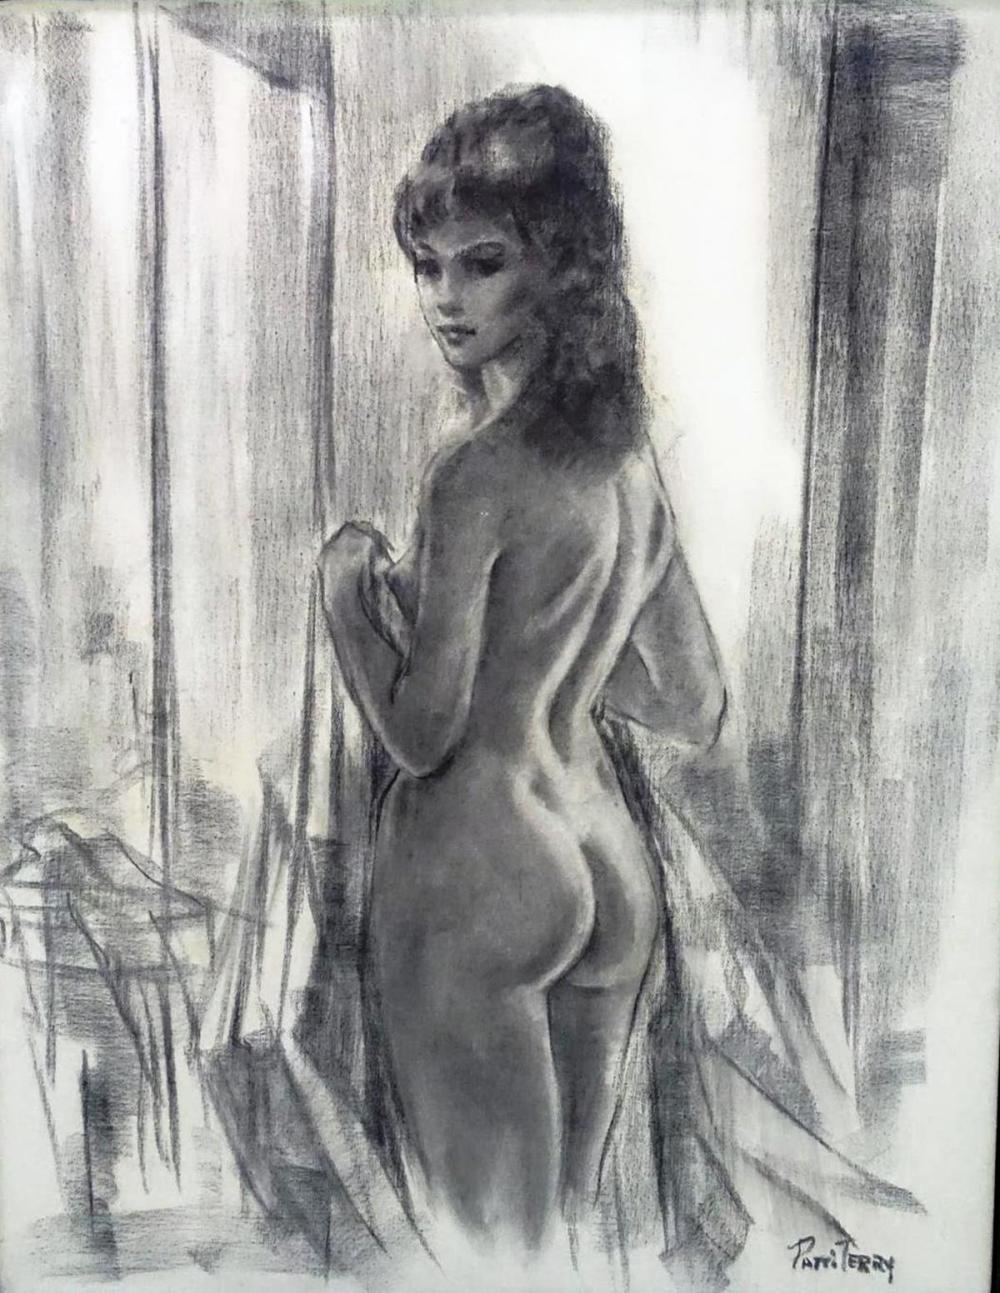 PATTY TERRY CHARCOAL OF NUDE, 1960'S.